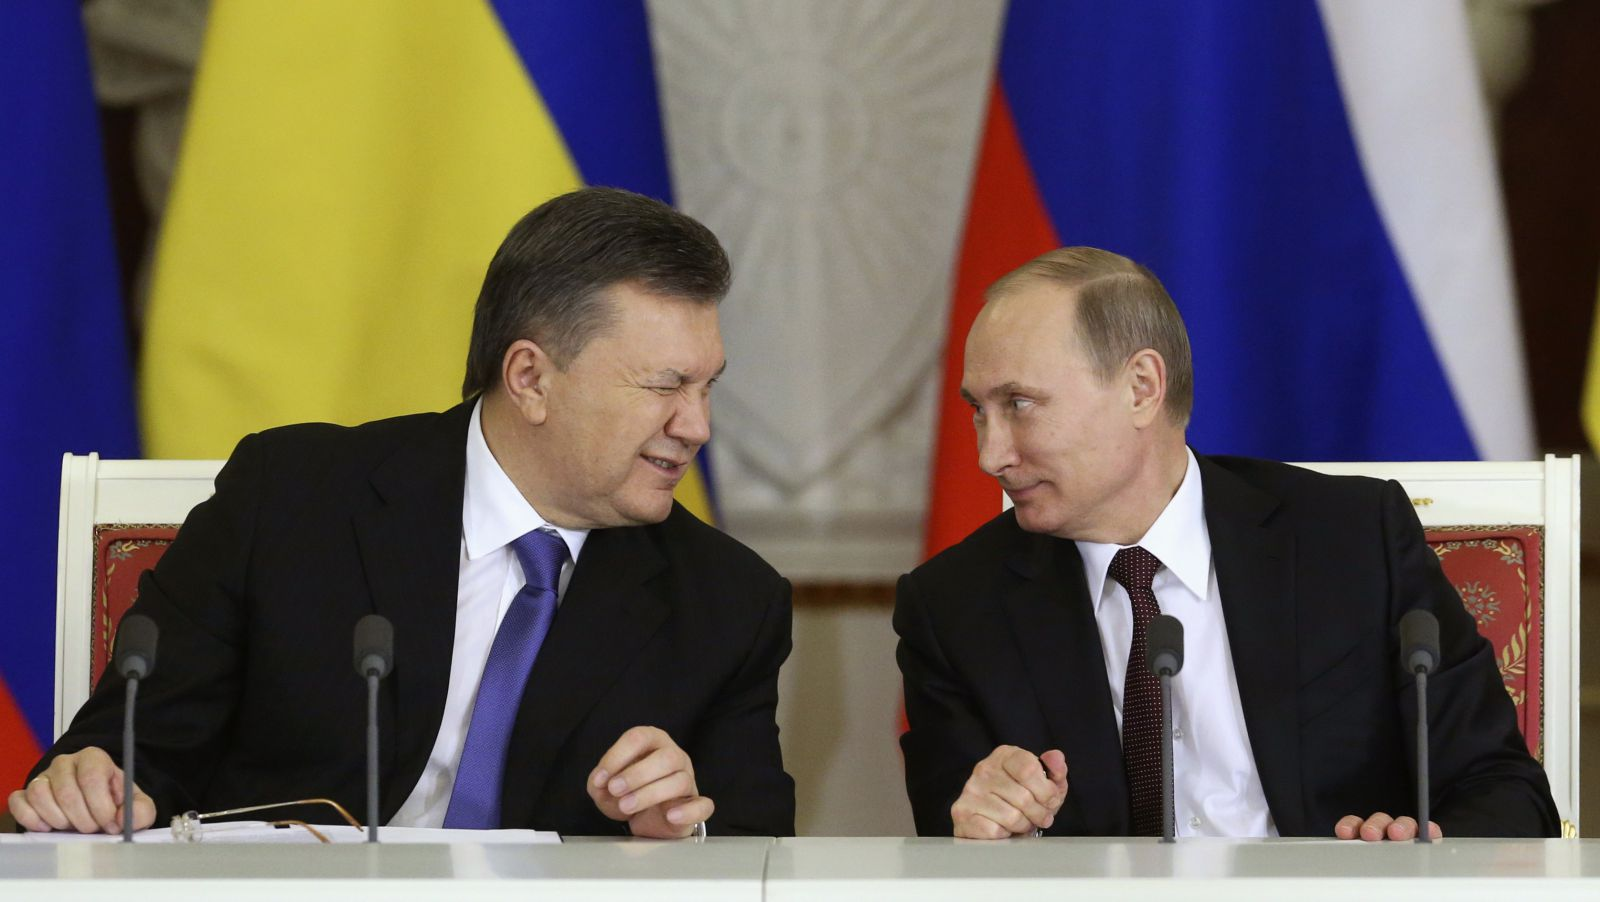 Putin with Yanukovich1